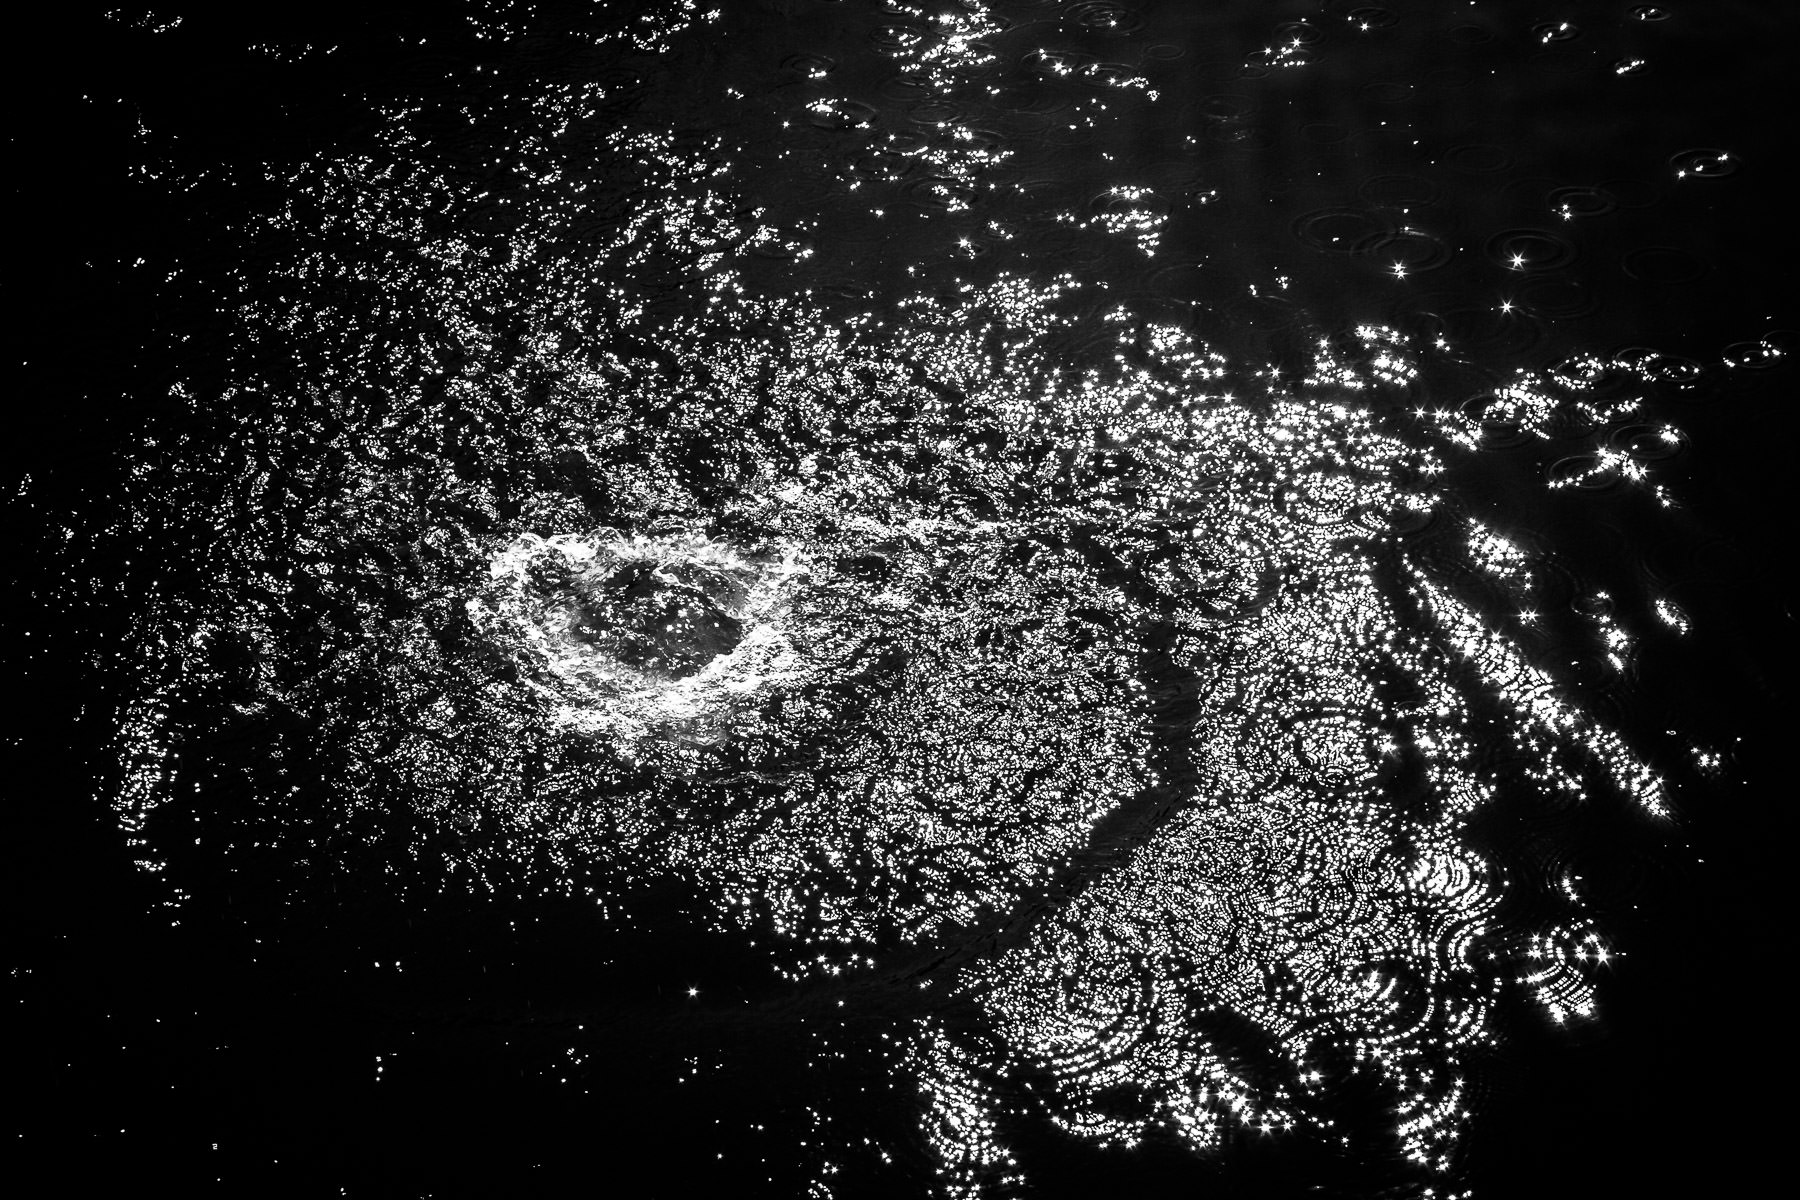 A rock splashing into Lake Mineral Wells, Texas, resembles the accretion disc of a galaxy as seen from above.